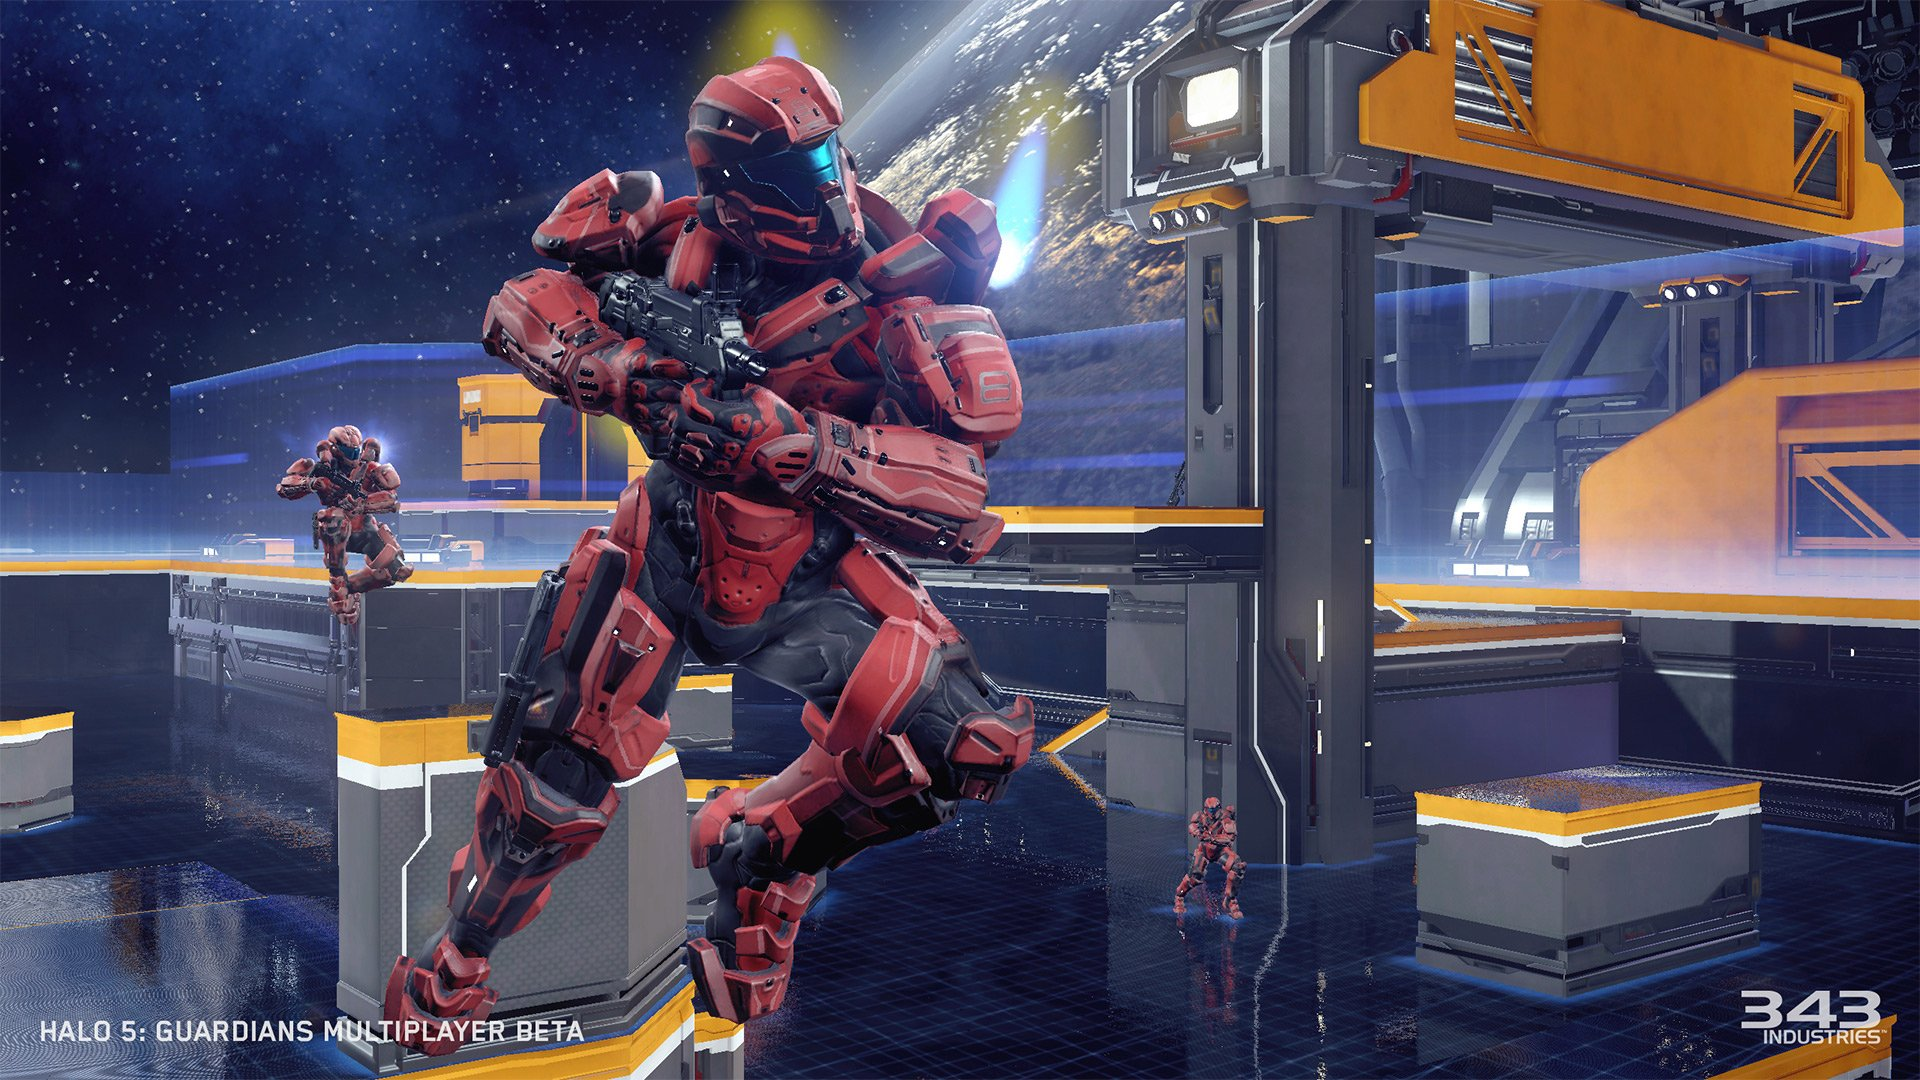 Halo 5's New Multiplayer Mode Breakout Is Now Playable